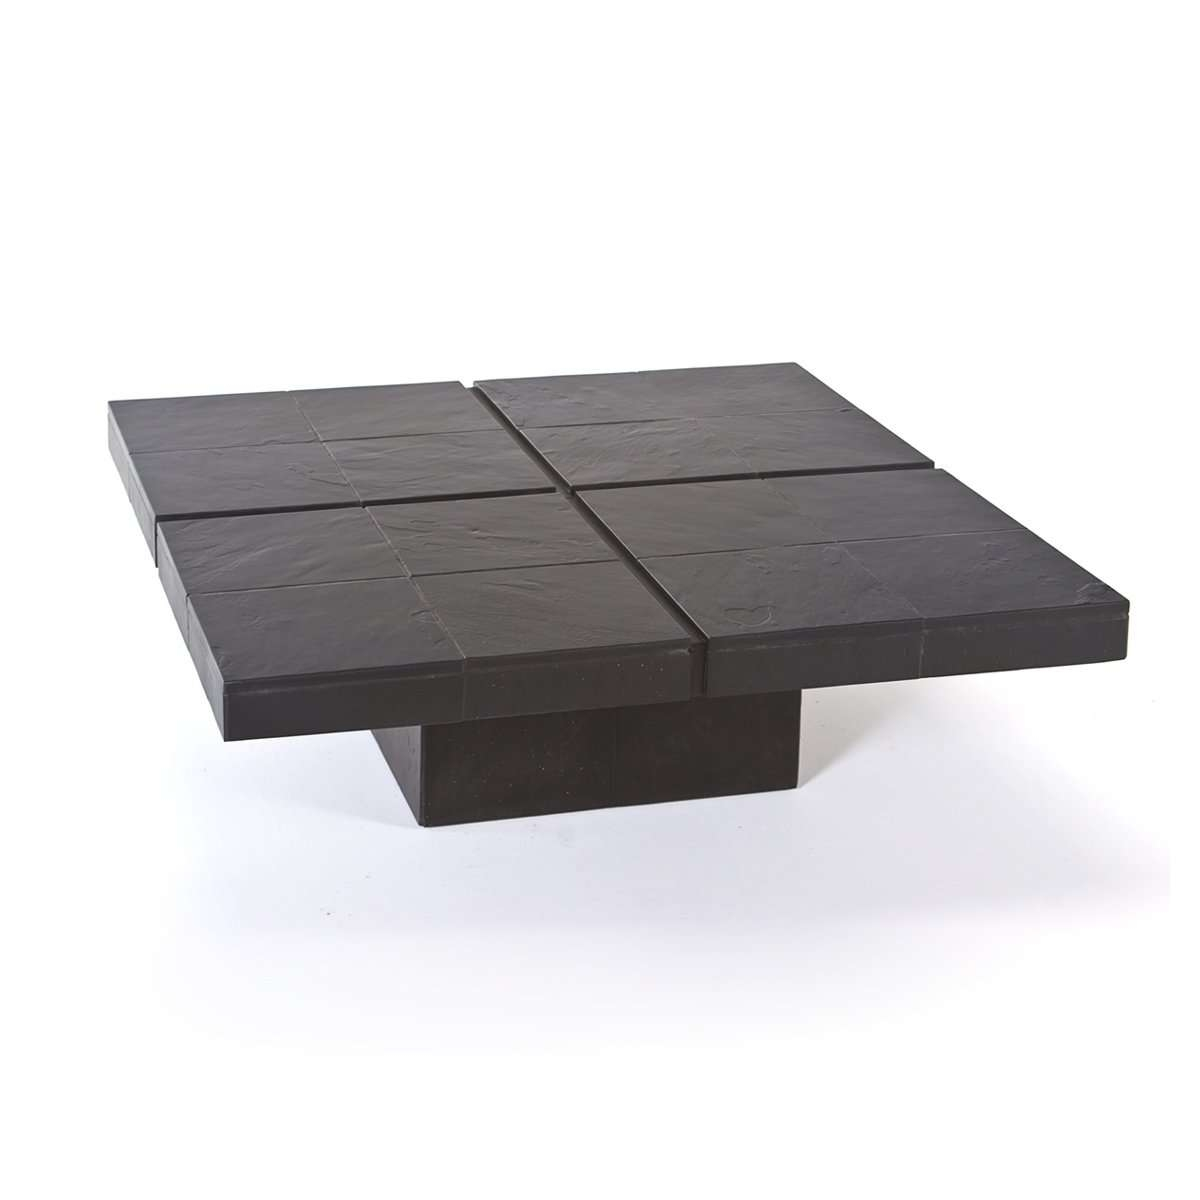 Latest Low Japanese Style Coffee Tables Intended For Small Space Coffee Table And Dining Table Options – Japanese Style (View 8 of 20)